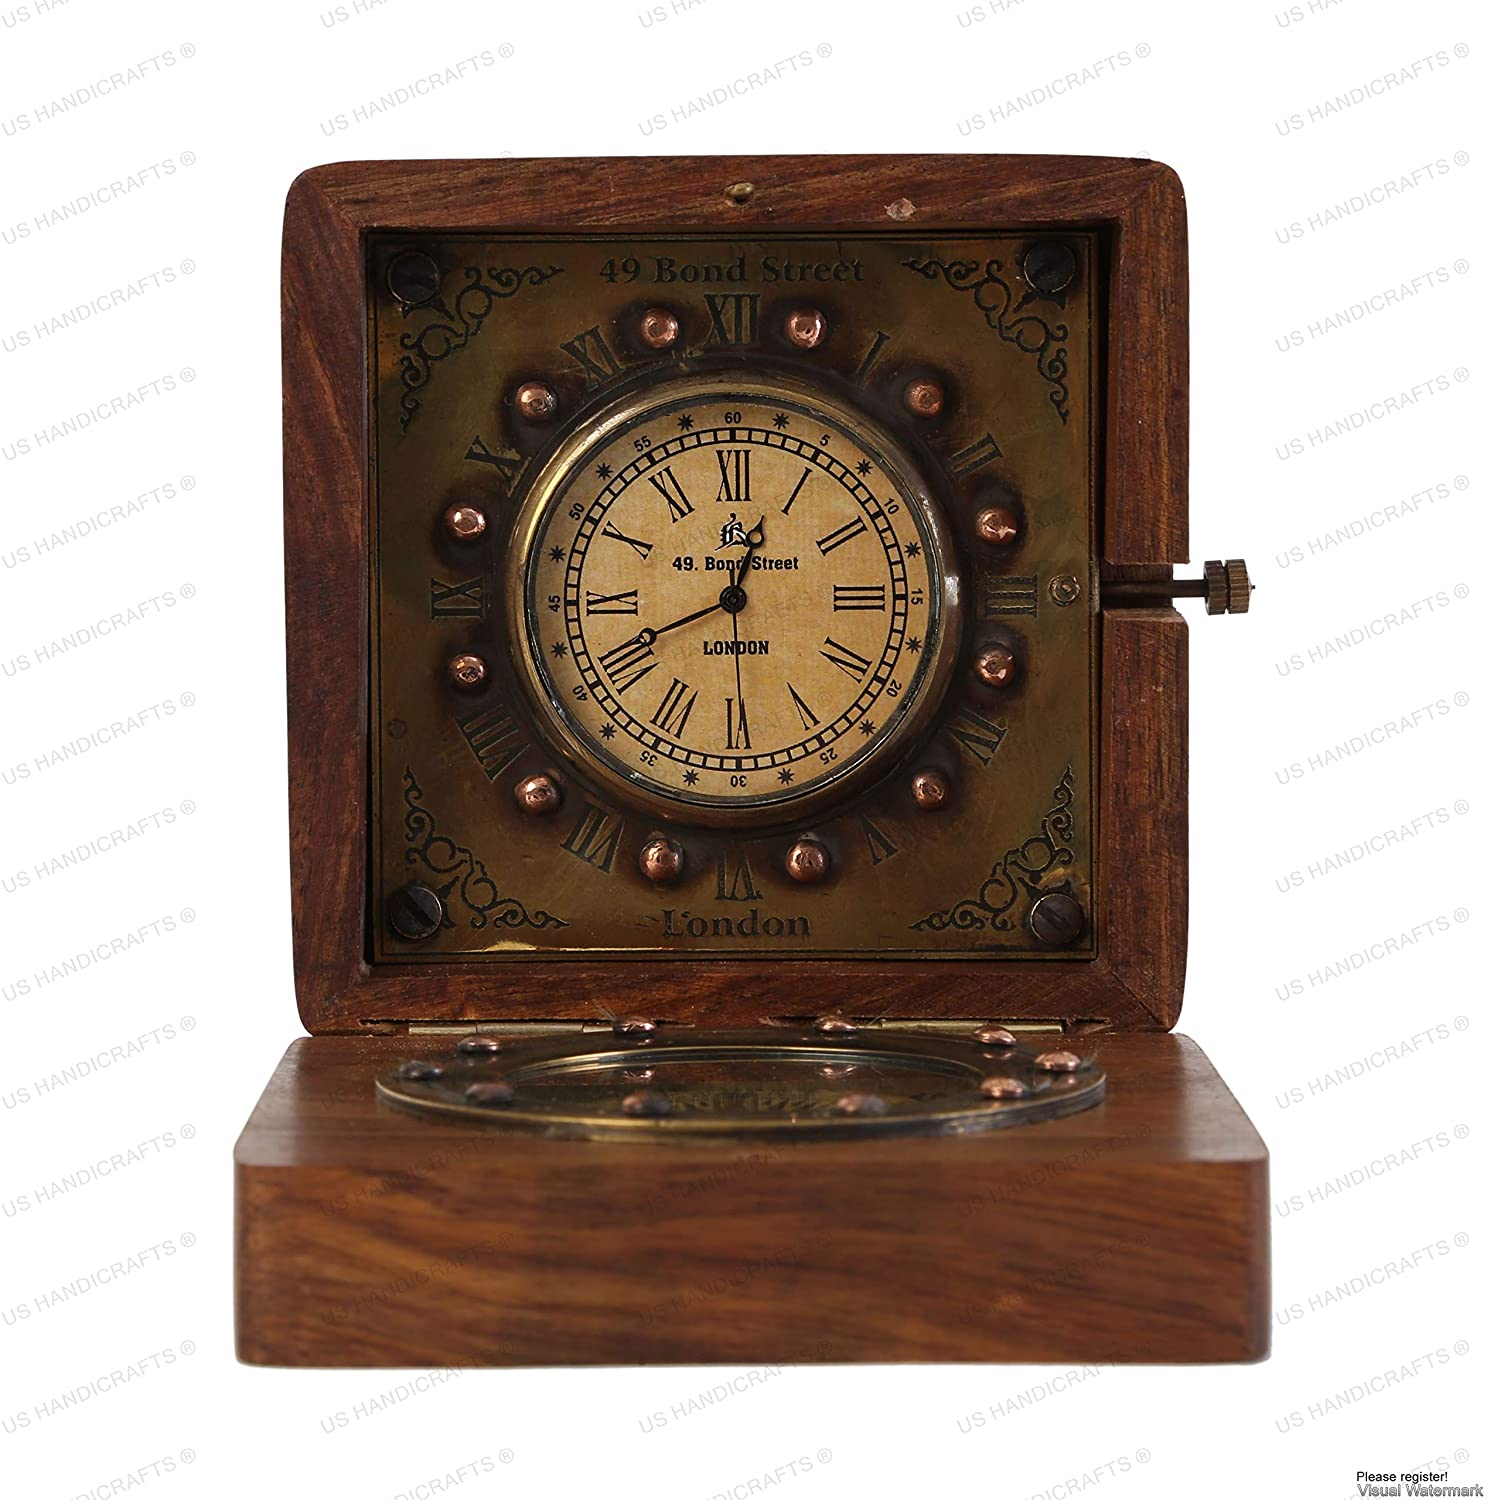 World Brass Magnetic Nautical Compass in wooden Box Gift Decor